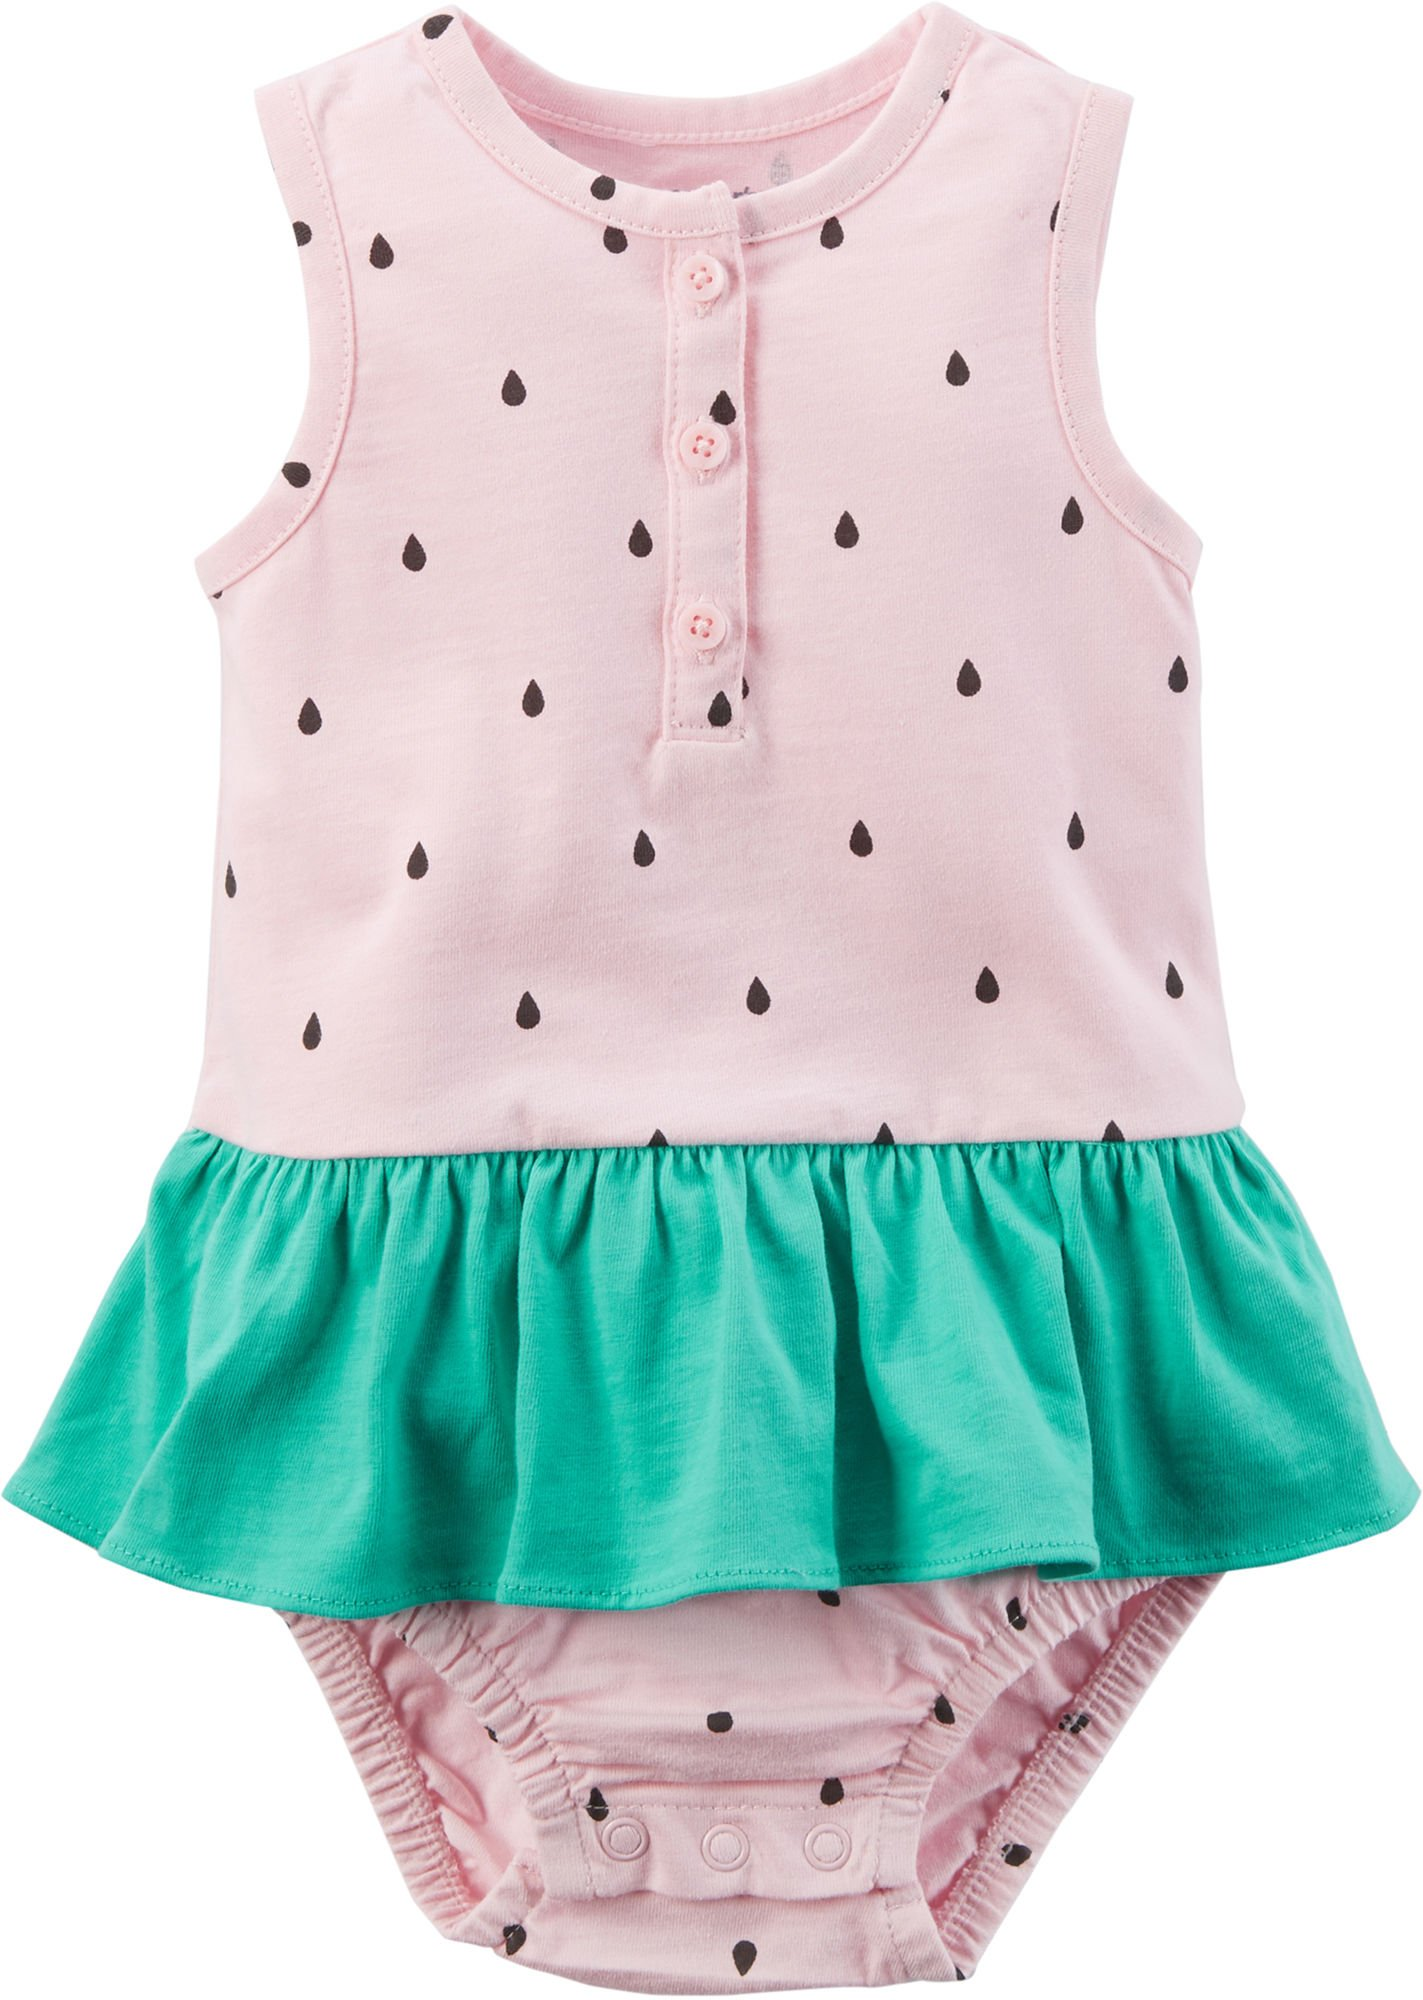 Carter's Baby Girls' Watermelon Sunsuit 9 Months